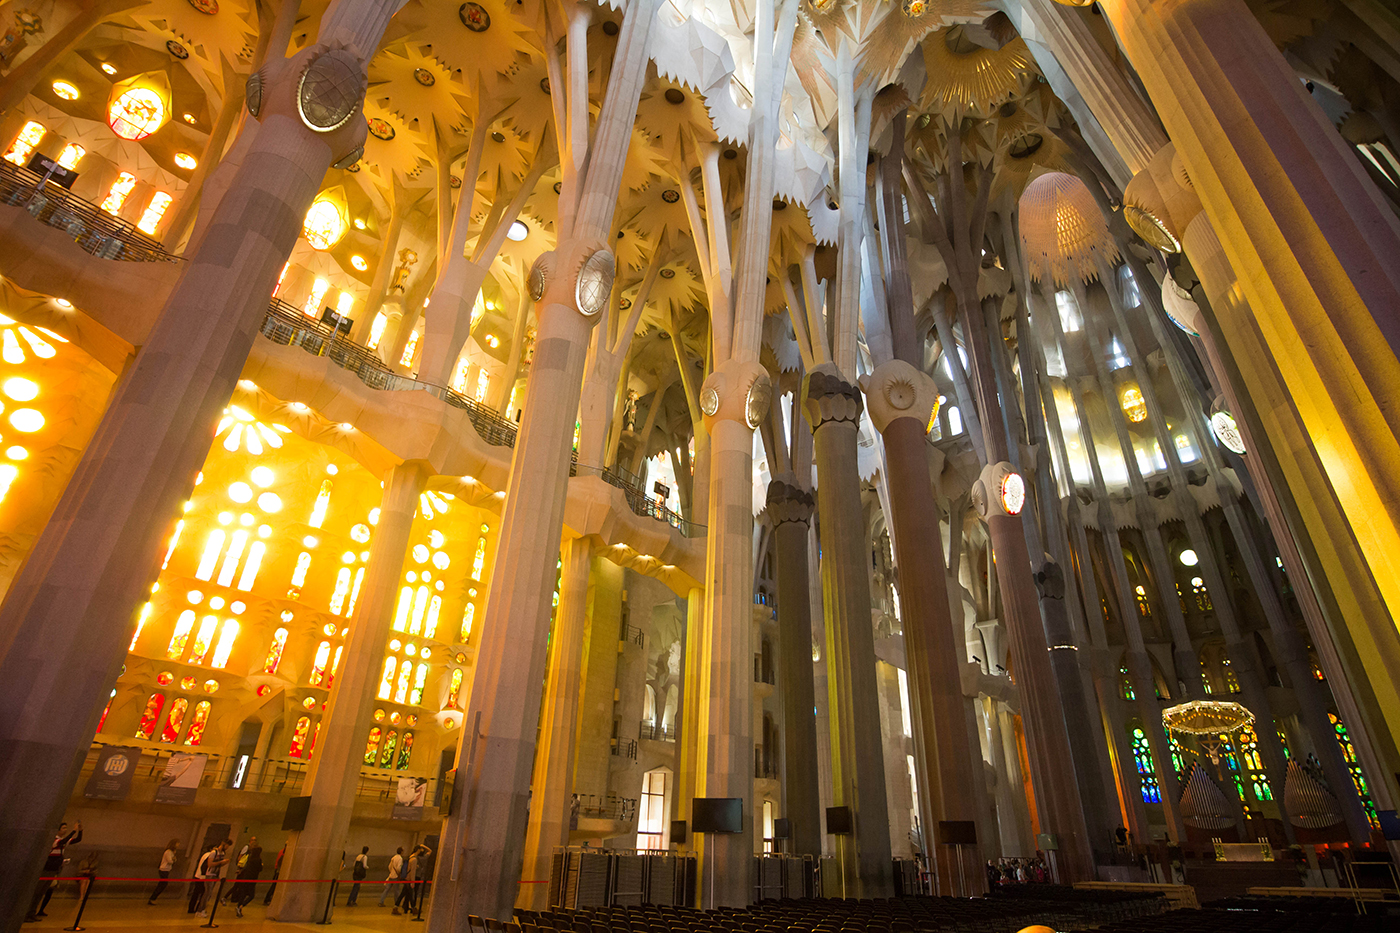 The inside of La Sagrada Familia